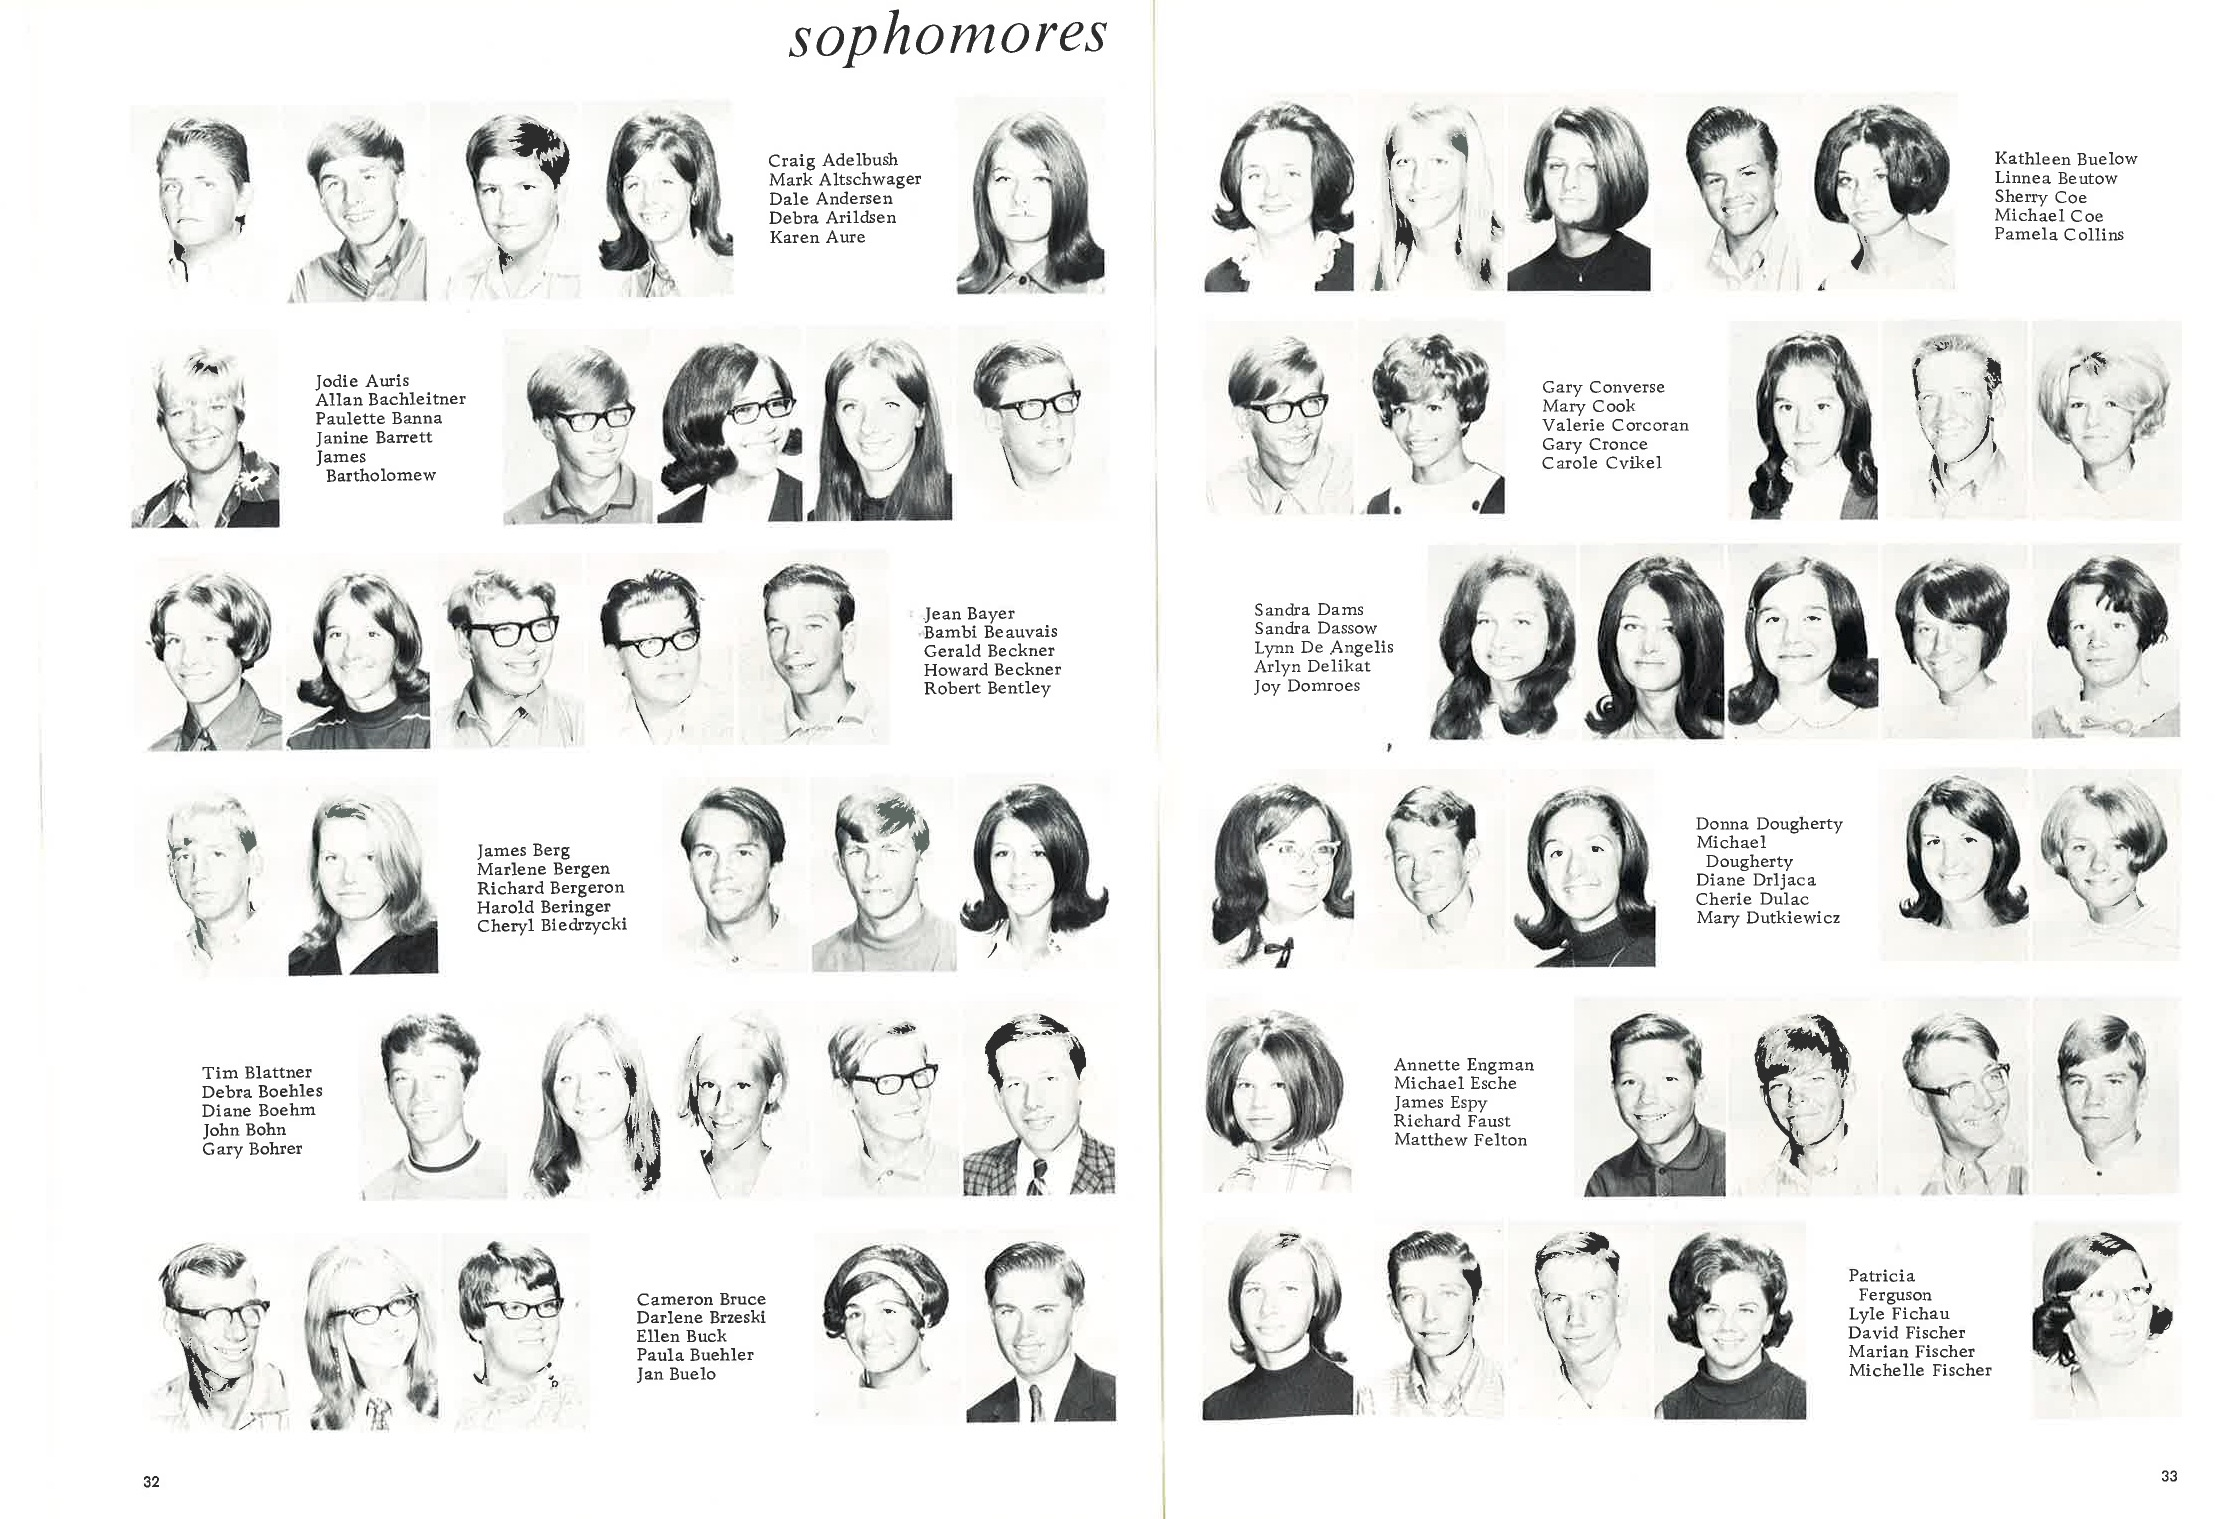 1970_Yearbook_32-33.jpg